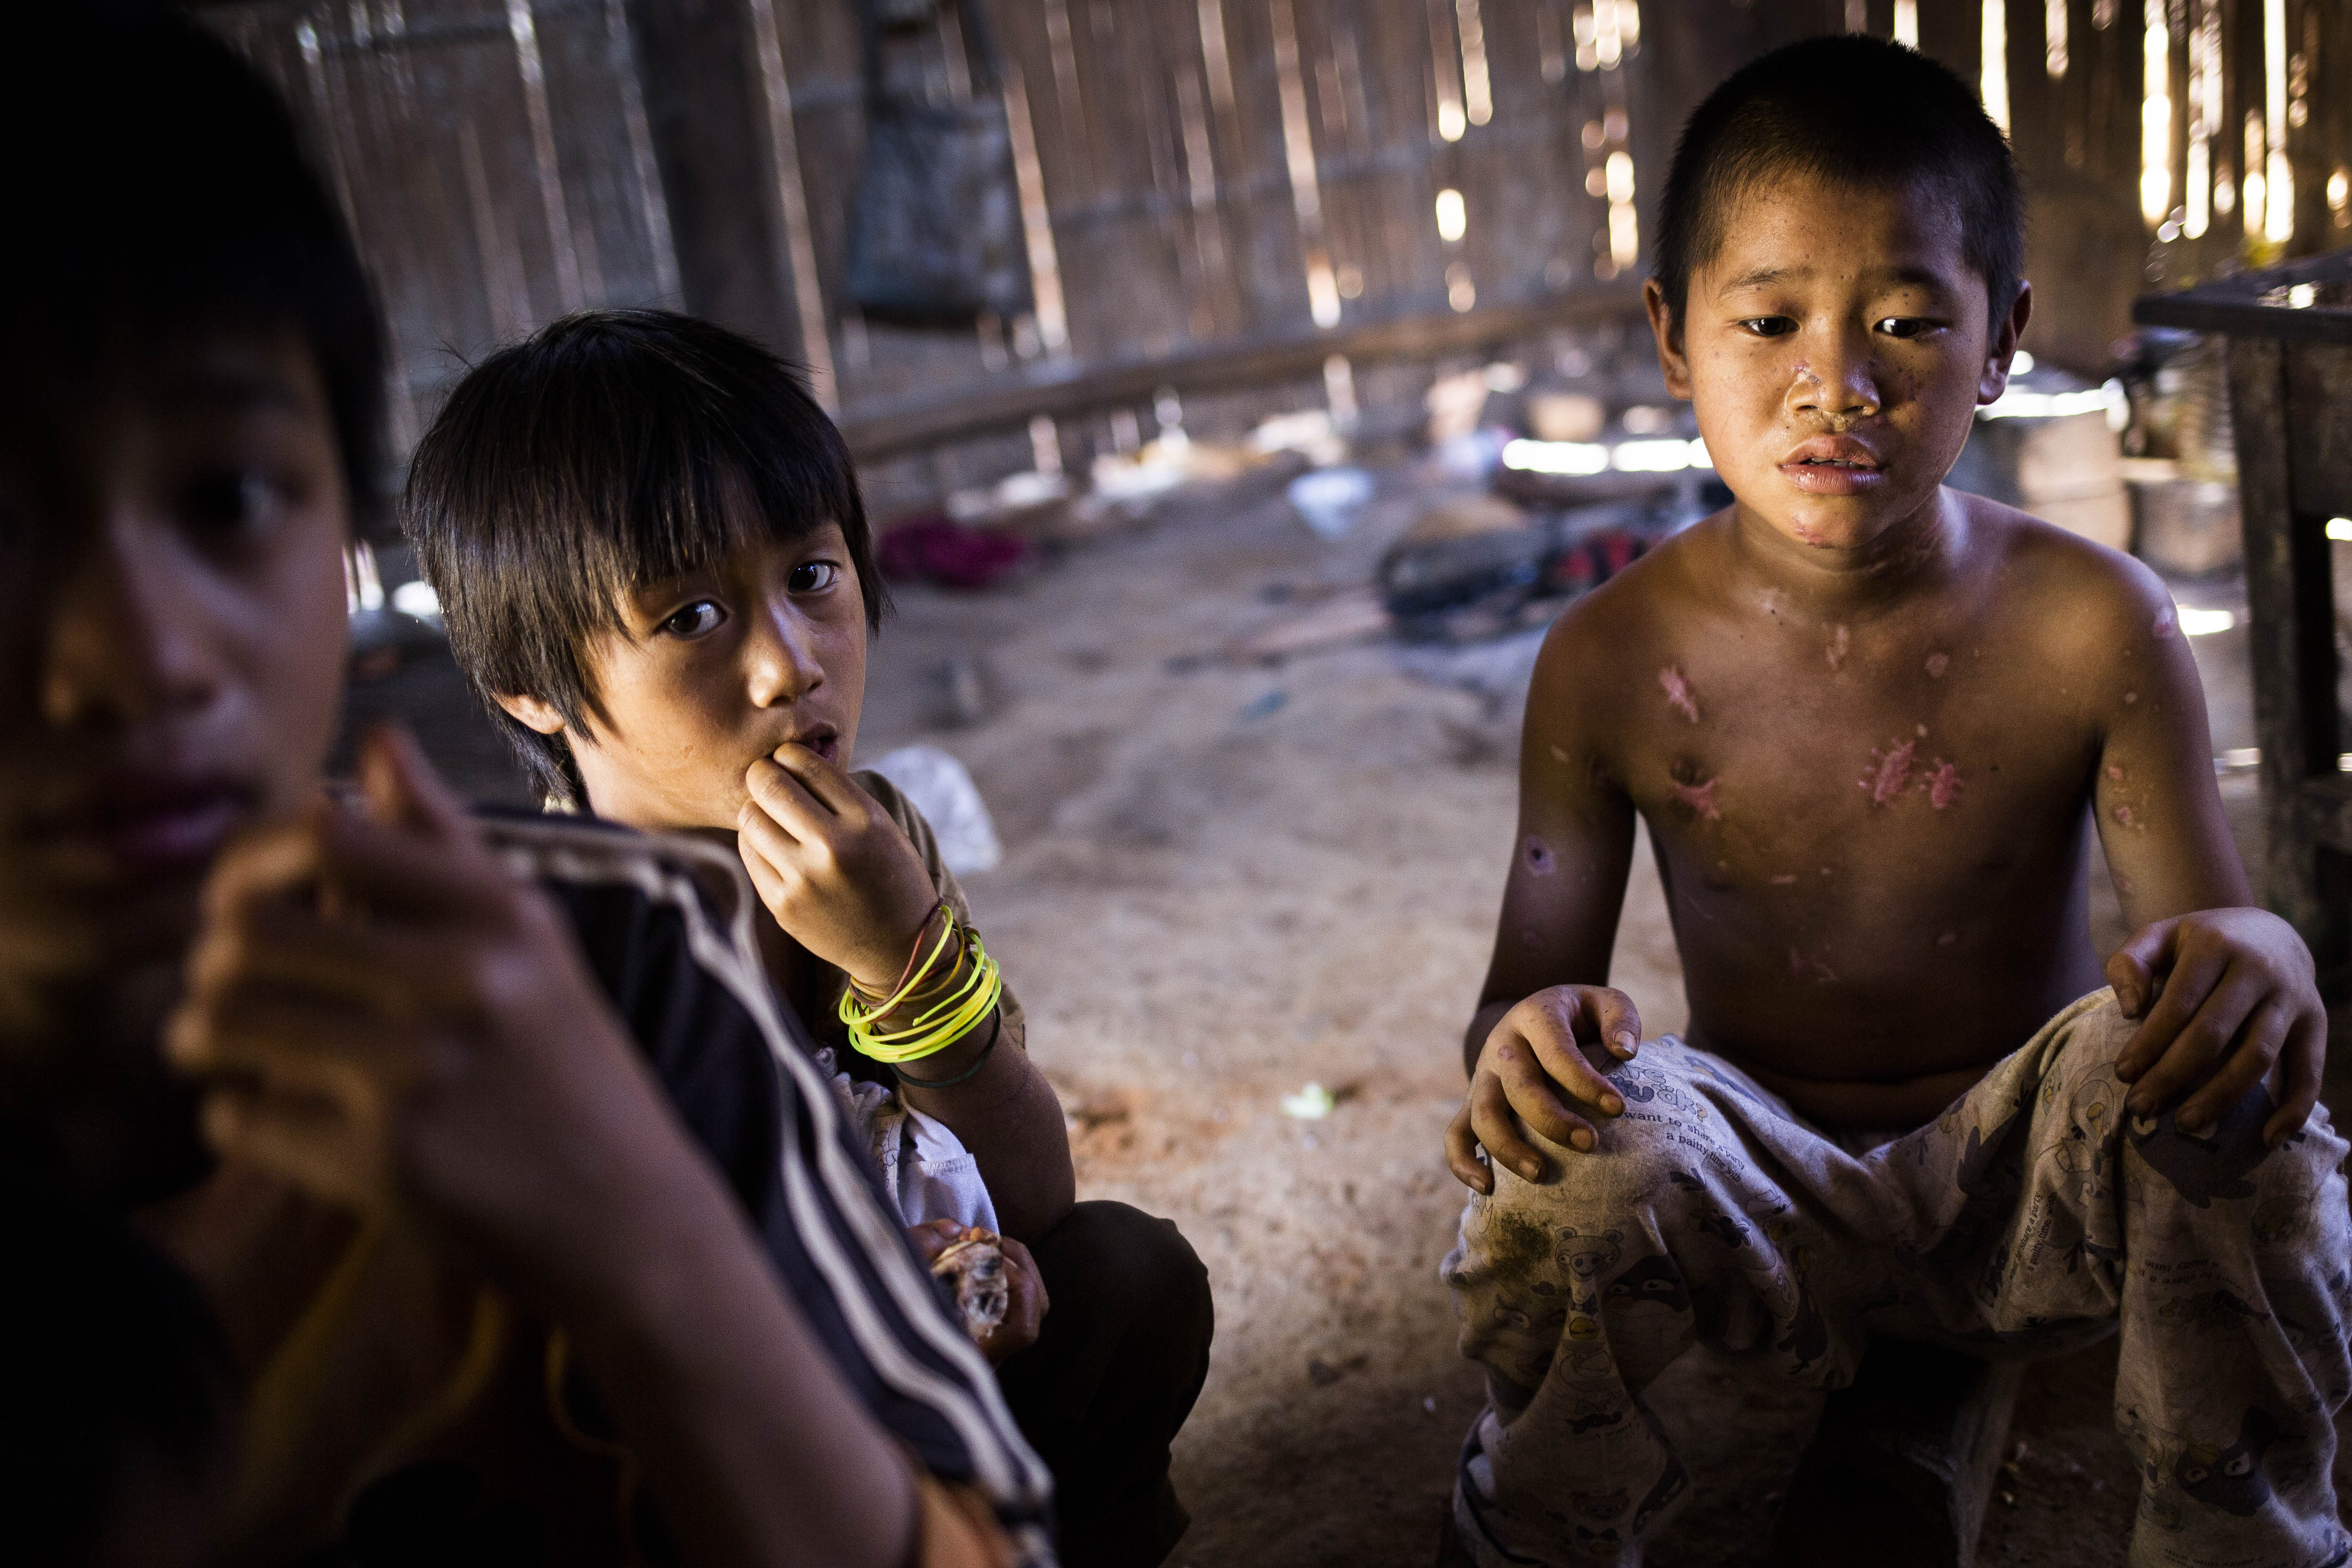 Luo Ben Cing, 10, shown in November 2015 displaying injuries he received from a landmine explosion in Myanmar's Shan State